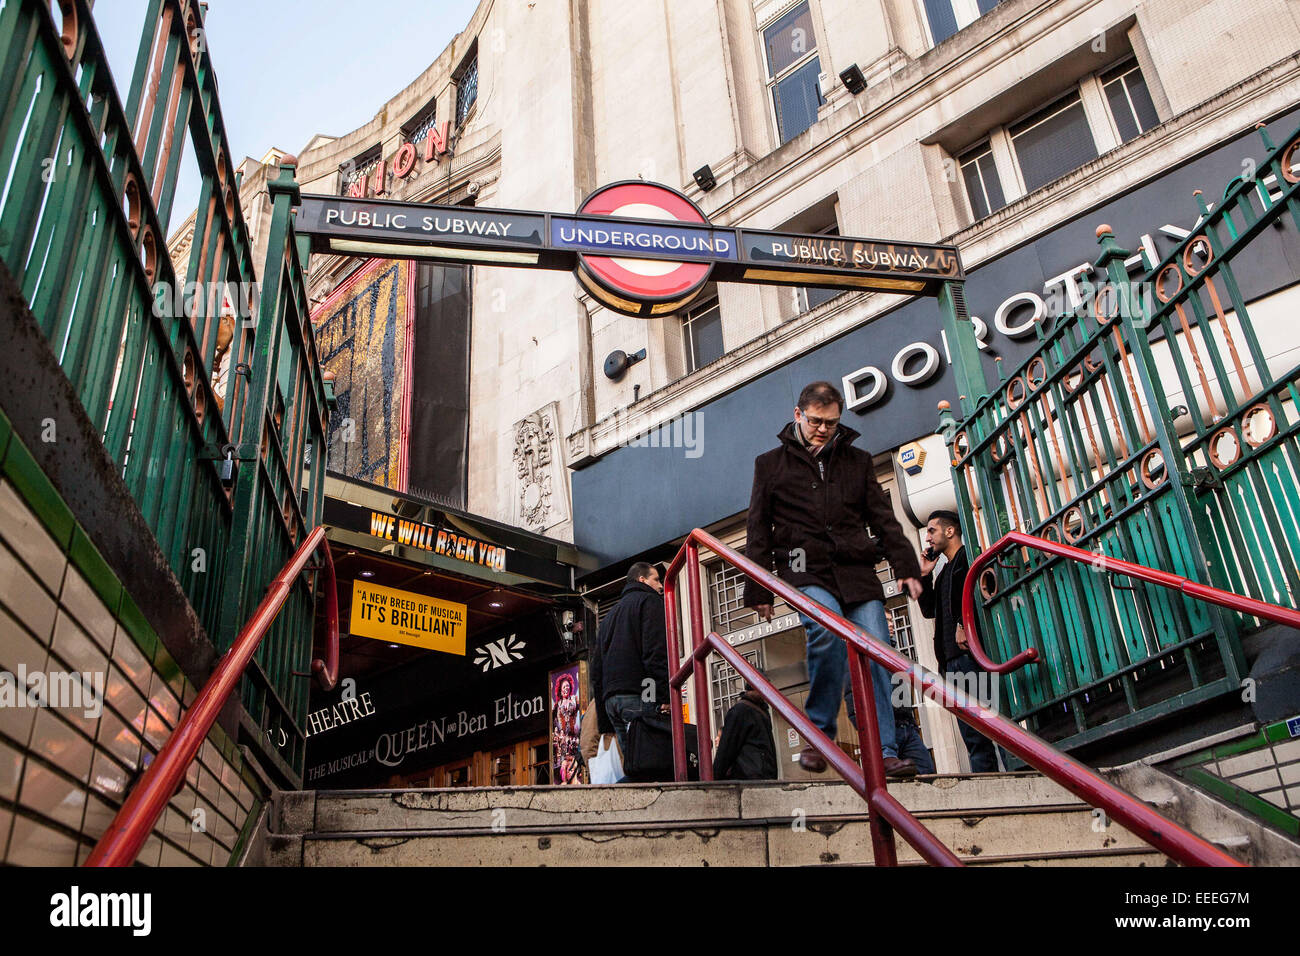 Northeast Entrance to Tottenham Court Road Station. - Stock Image